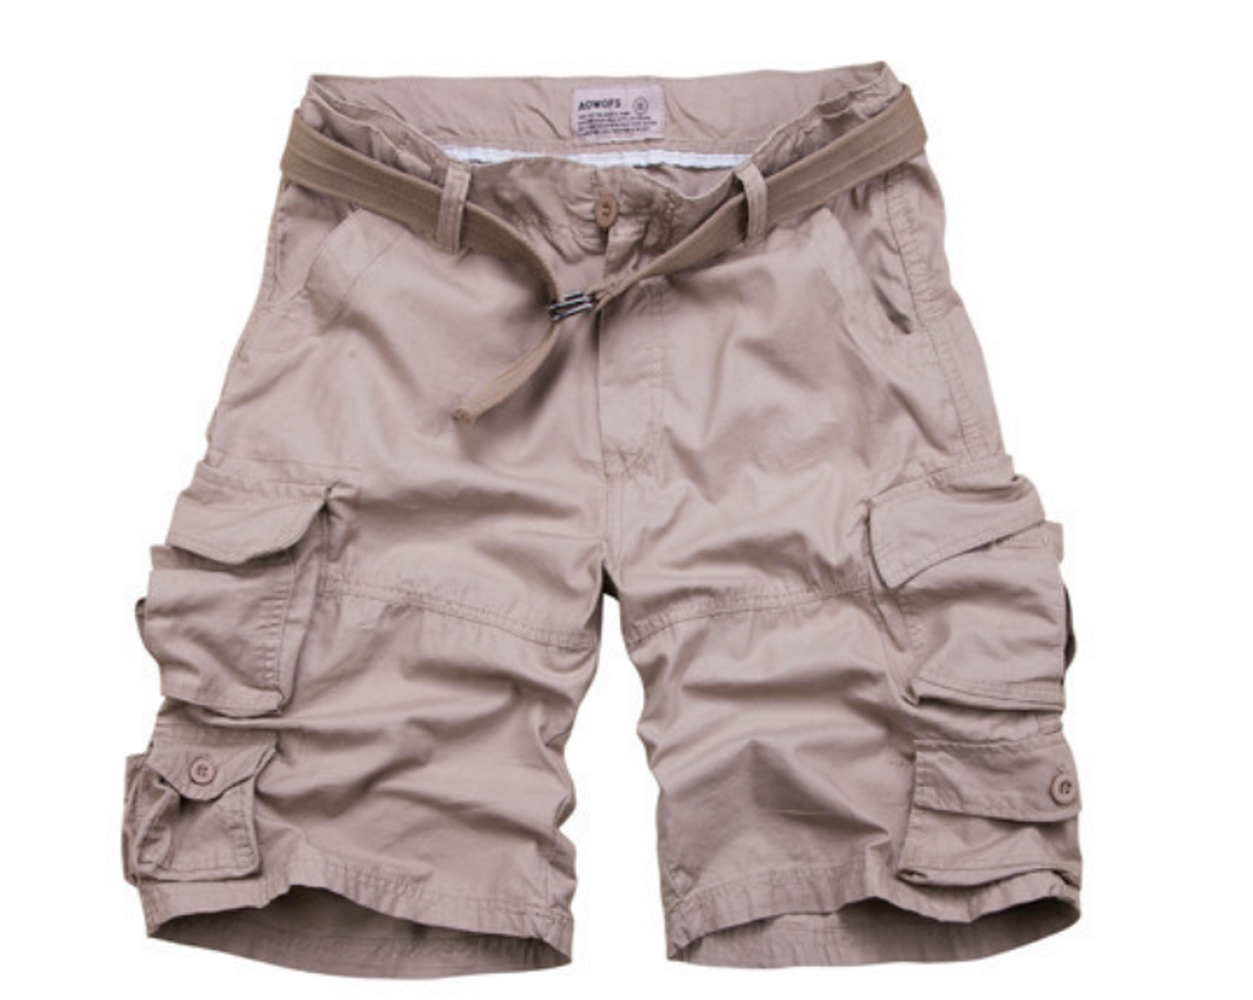 Mens Colorful Plus Size Loose Fit Baggy Cotton Cargo Shorts with Zipper for Men DK001